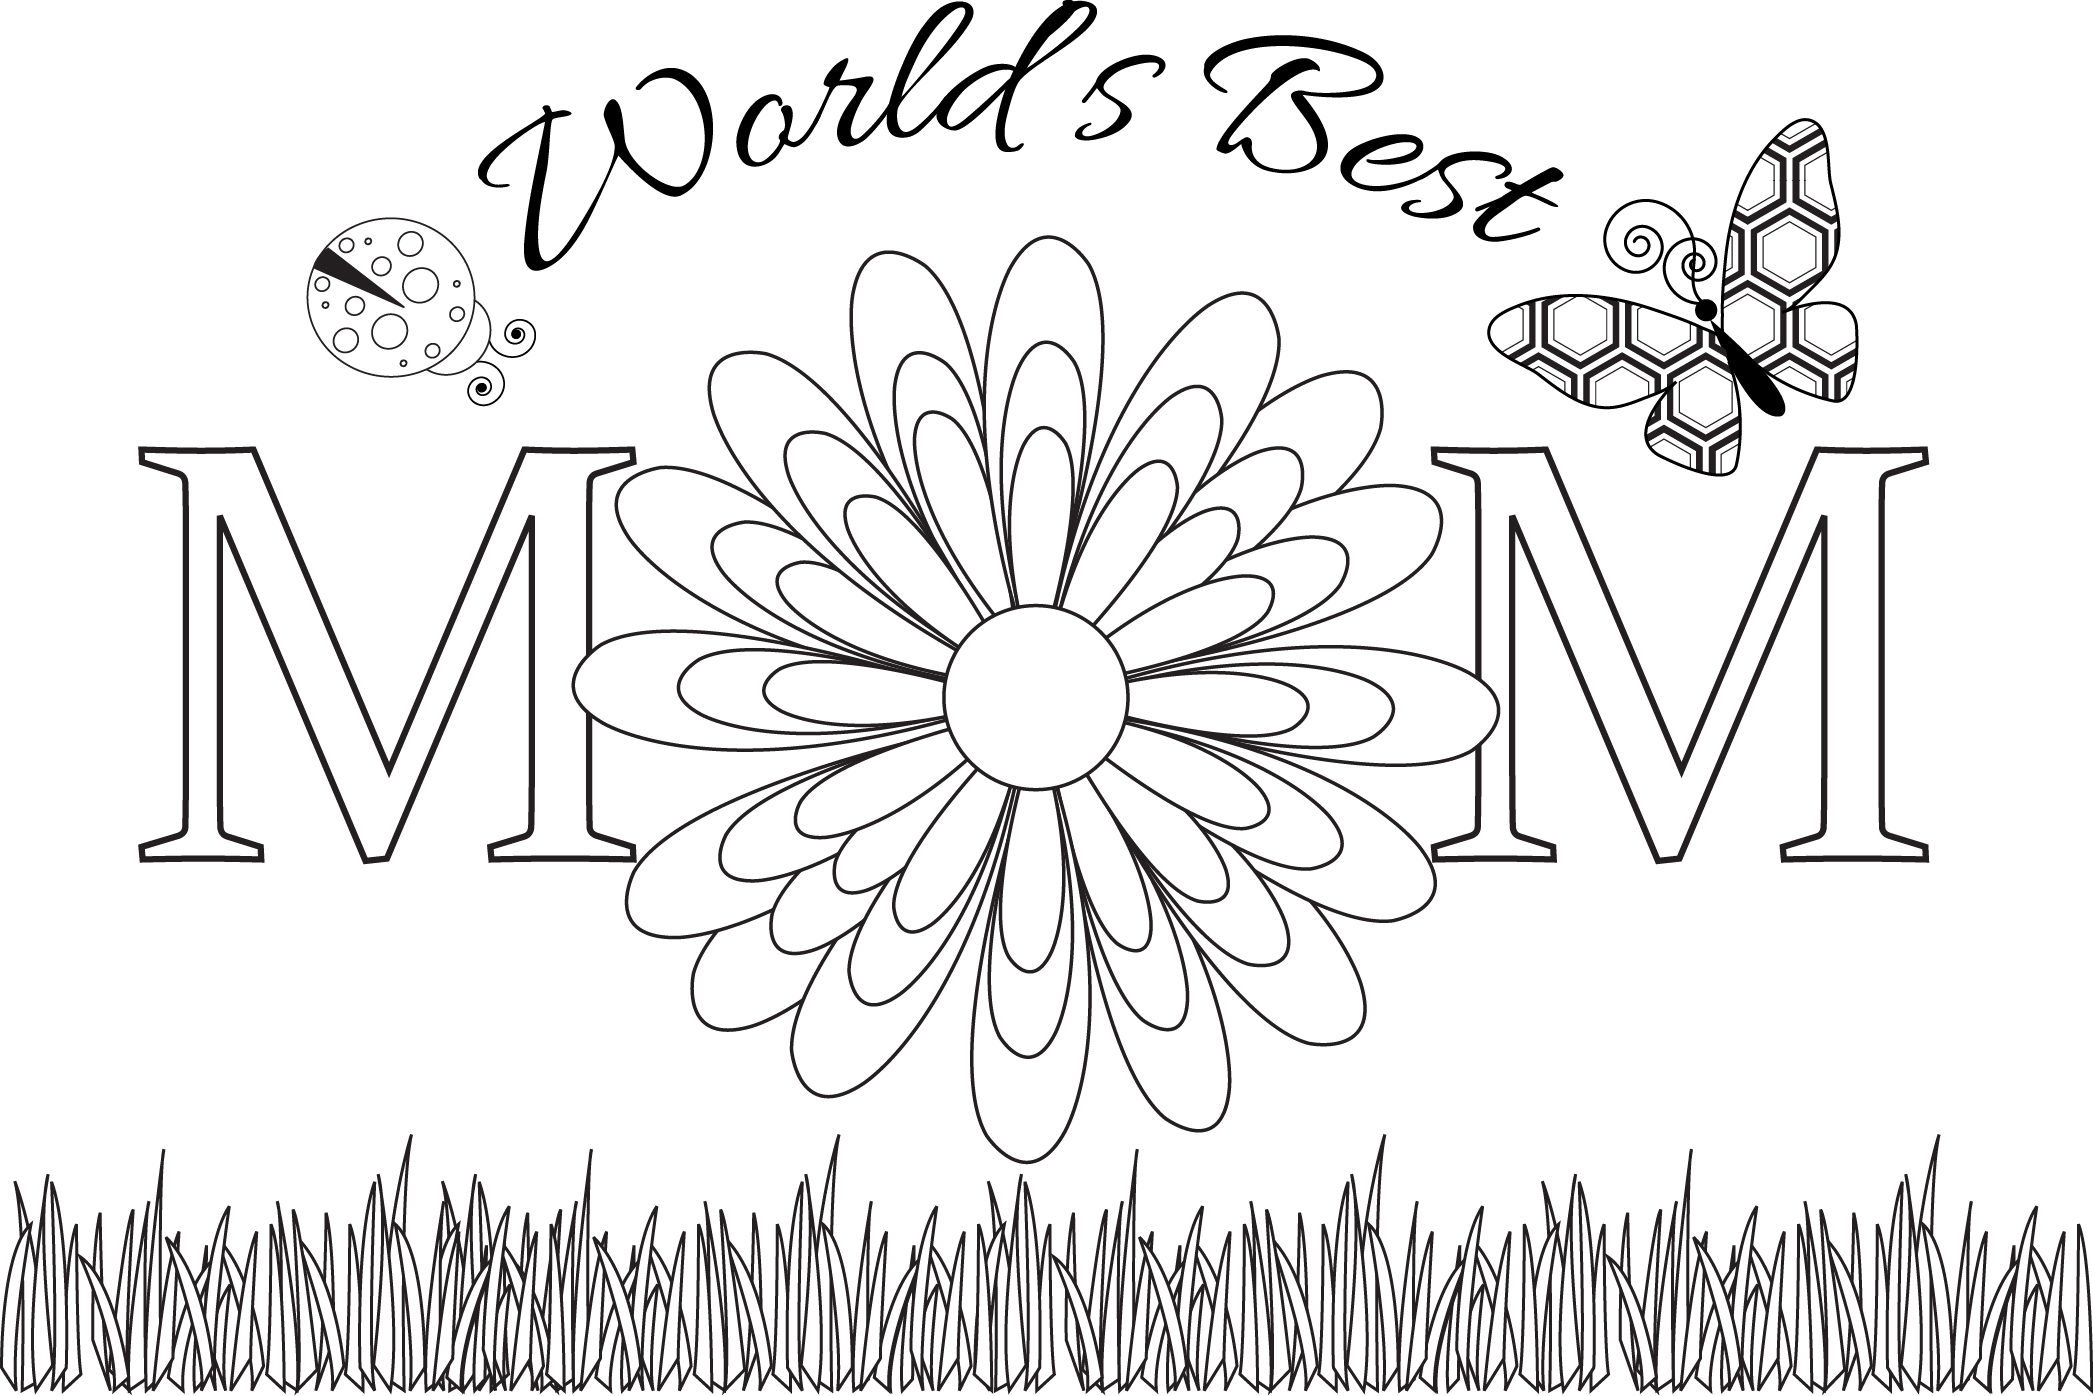 Happy mother s day free coloring pages bride of christ for Happy mothers day coloring pages for kids